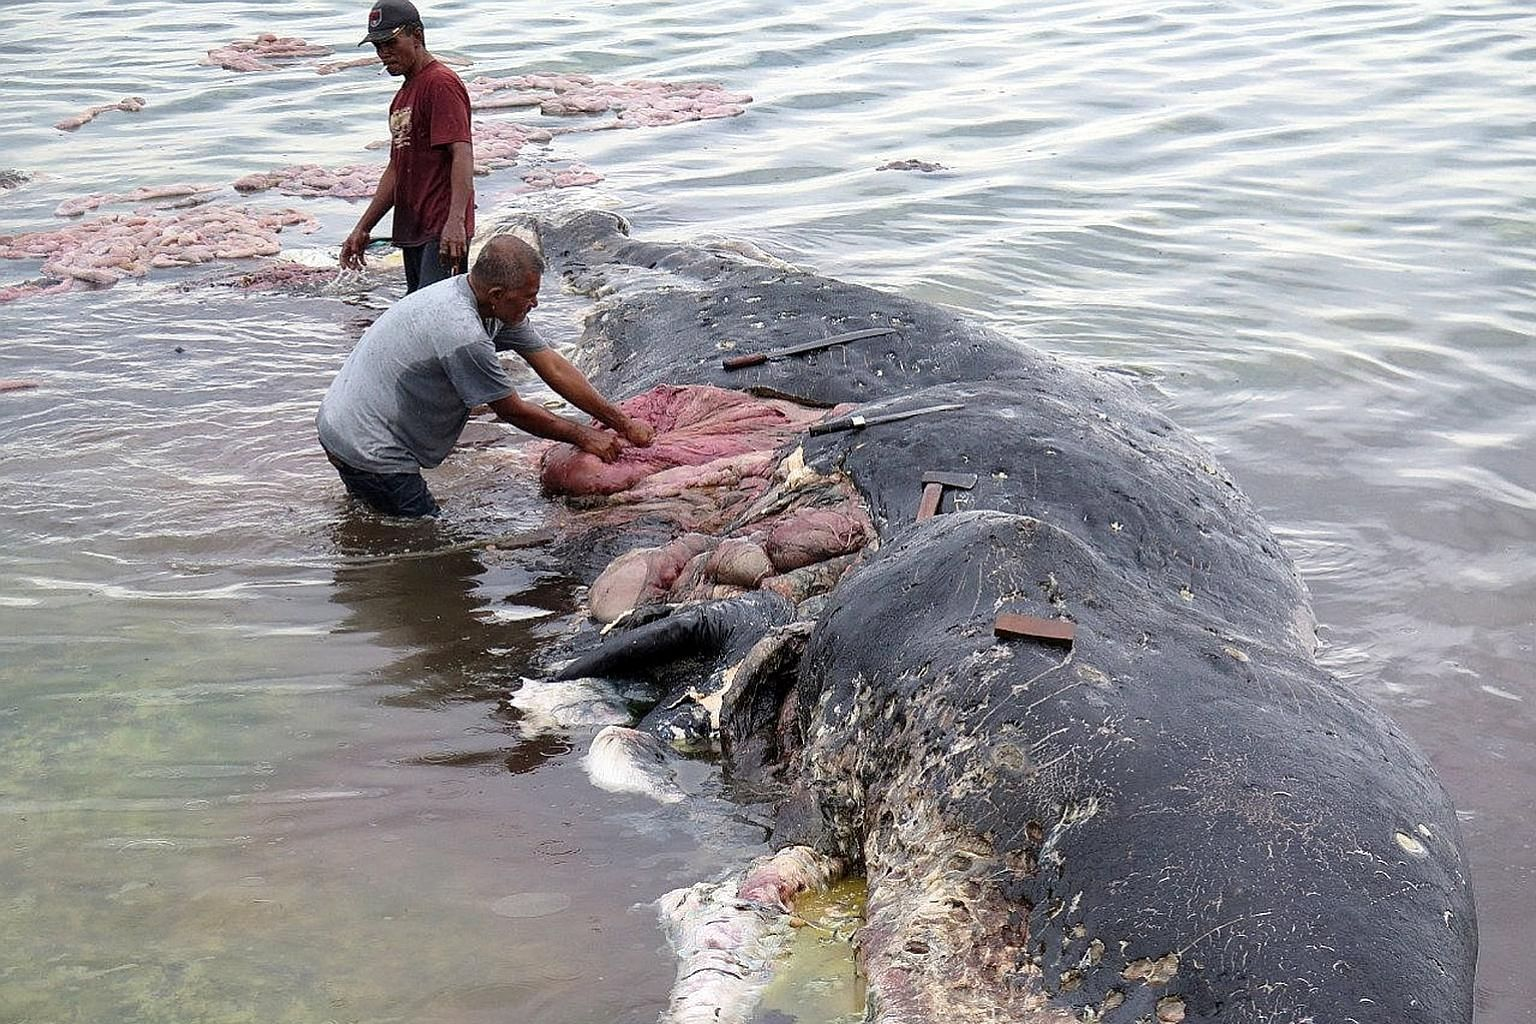 Workers collecting plastic items and rubbish, including a sack with more than 1,000 pieces of string, from the stomach of a sperm whale found dead in an Indonesia national park.